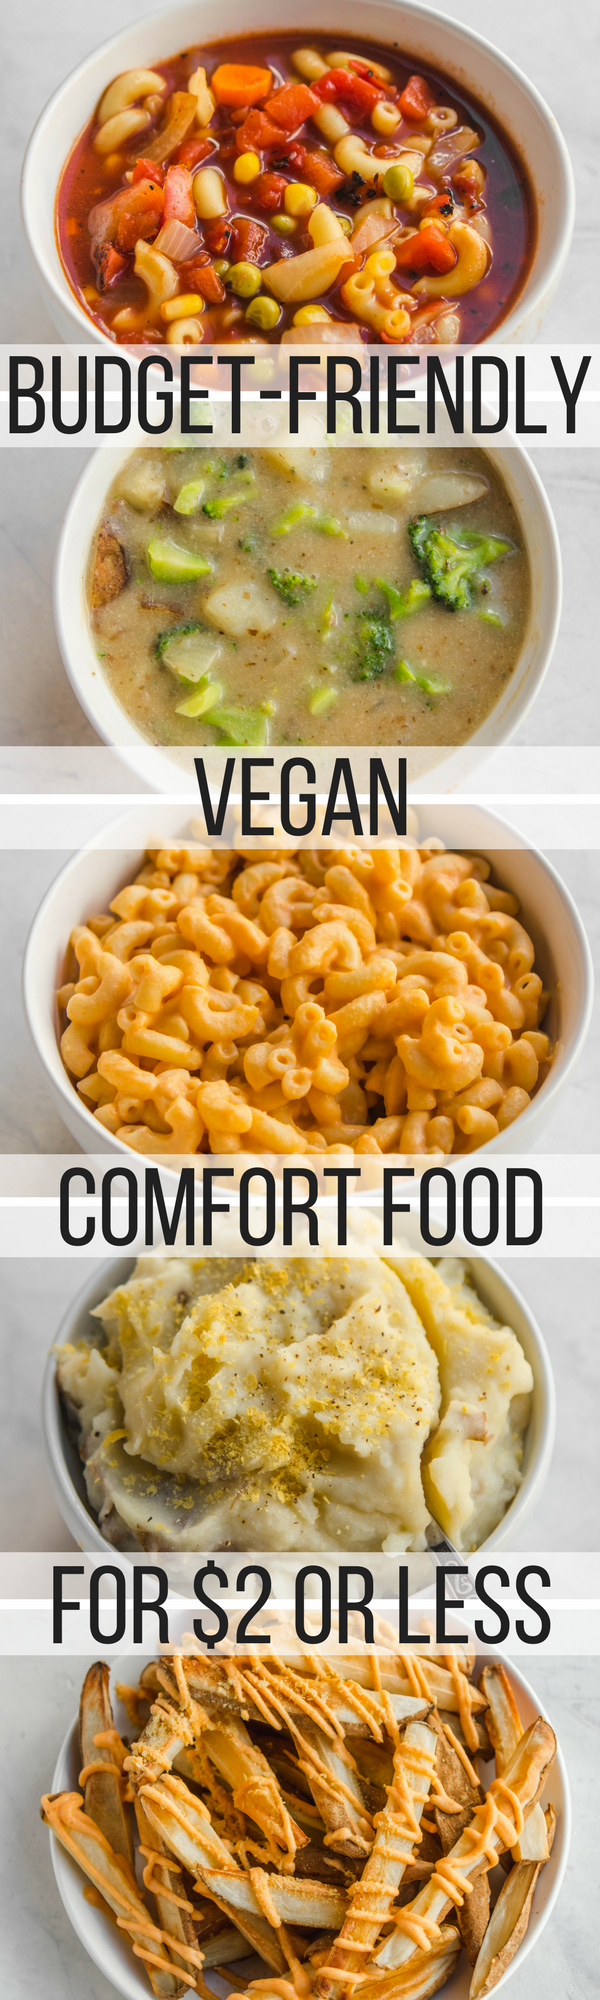 5 budget friendly vegan comfort food recipes under 2 from my bowl vegan budget friendly vegan comfort food recipes under 2 per serving vegan forumfinder Choice Image